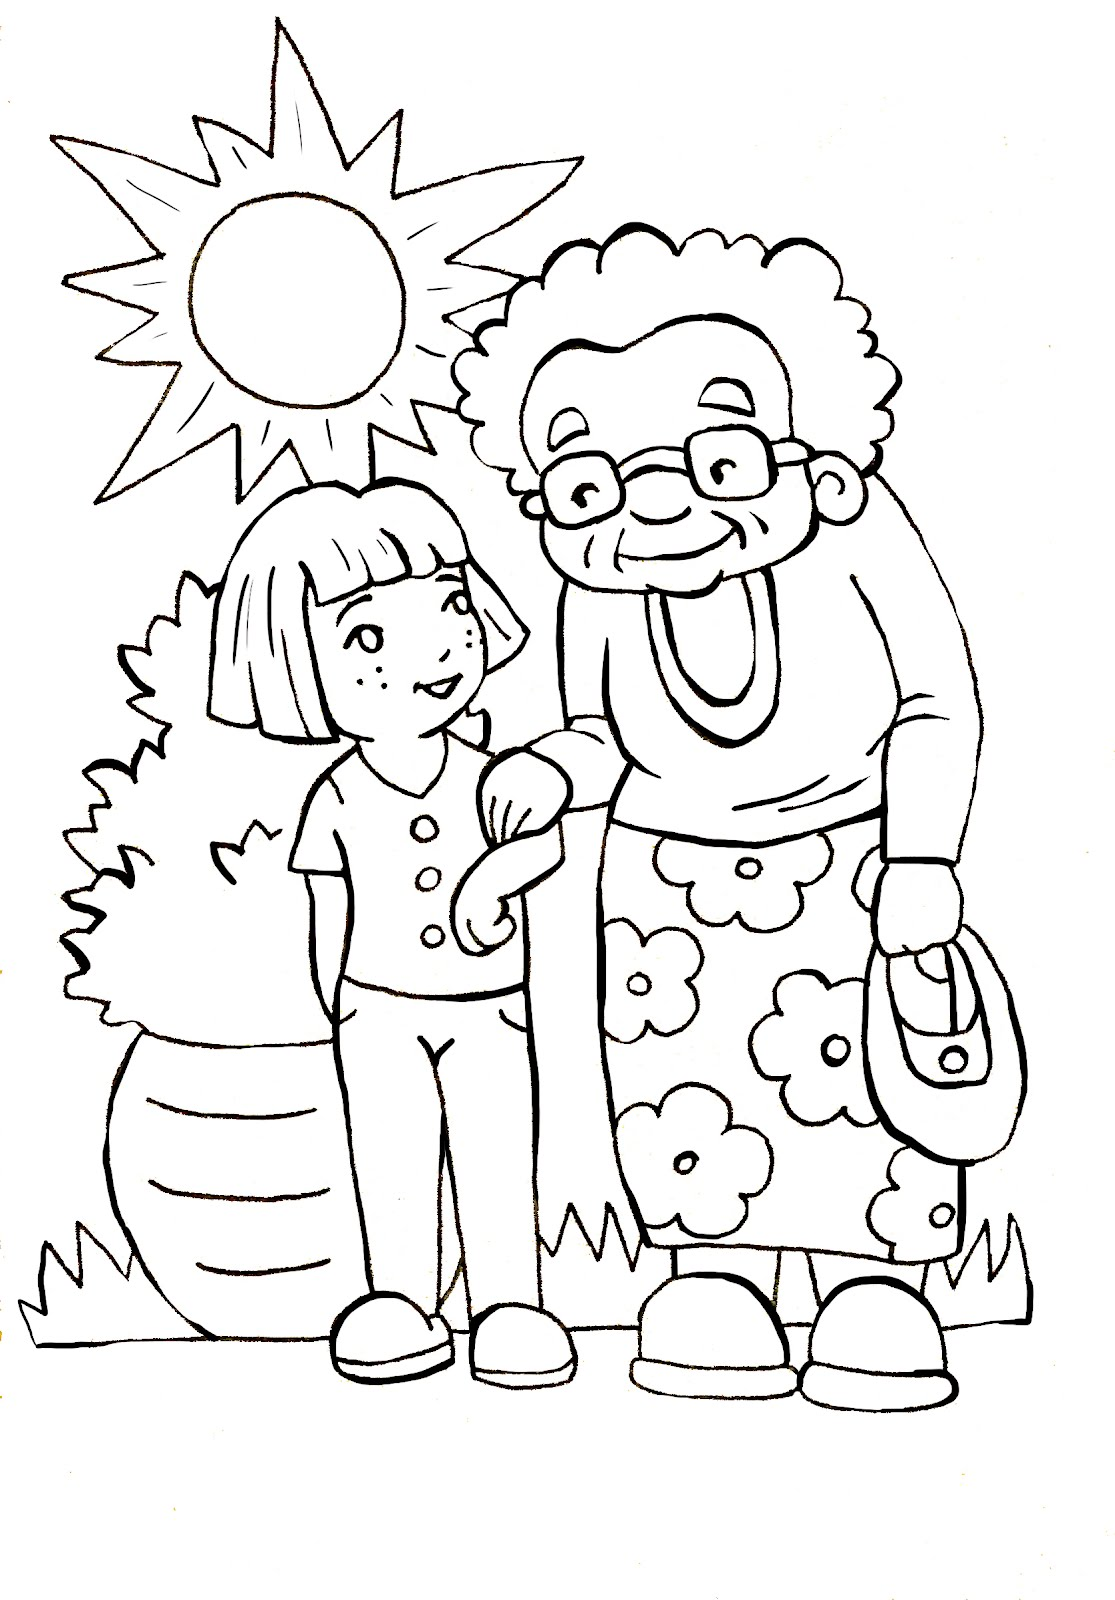 ILLUSTRATION ALCHEMY: LDS Mobile Apps Coloring Pages